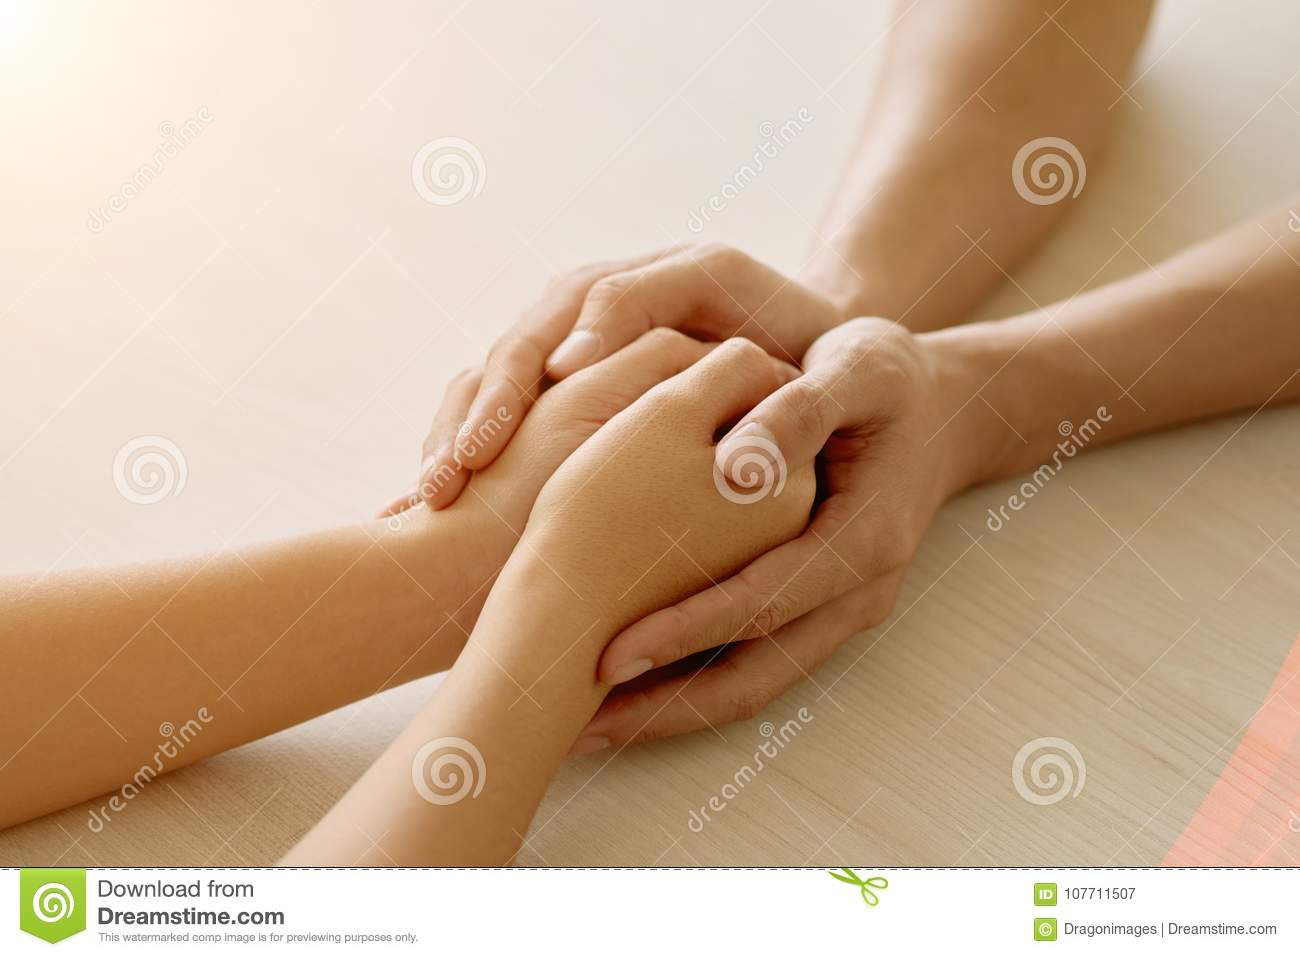 supportive friend stock image image of female hands 107711507